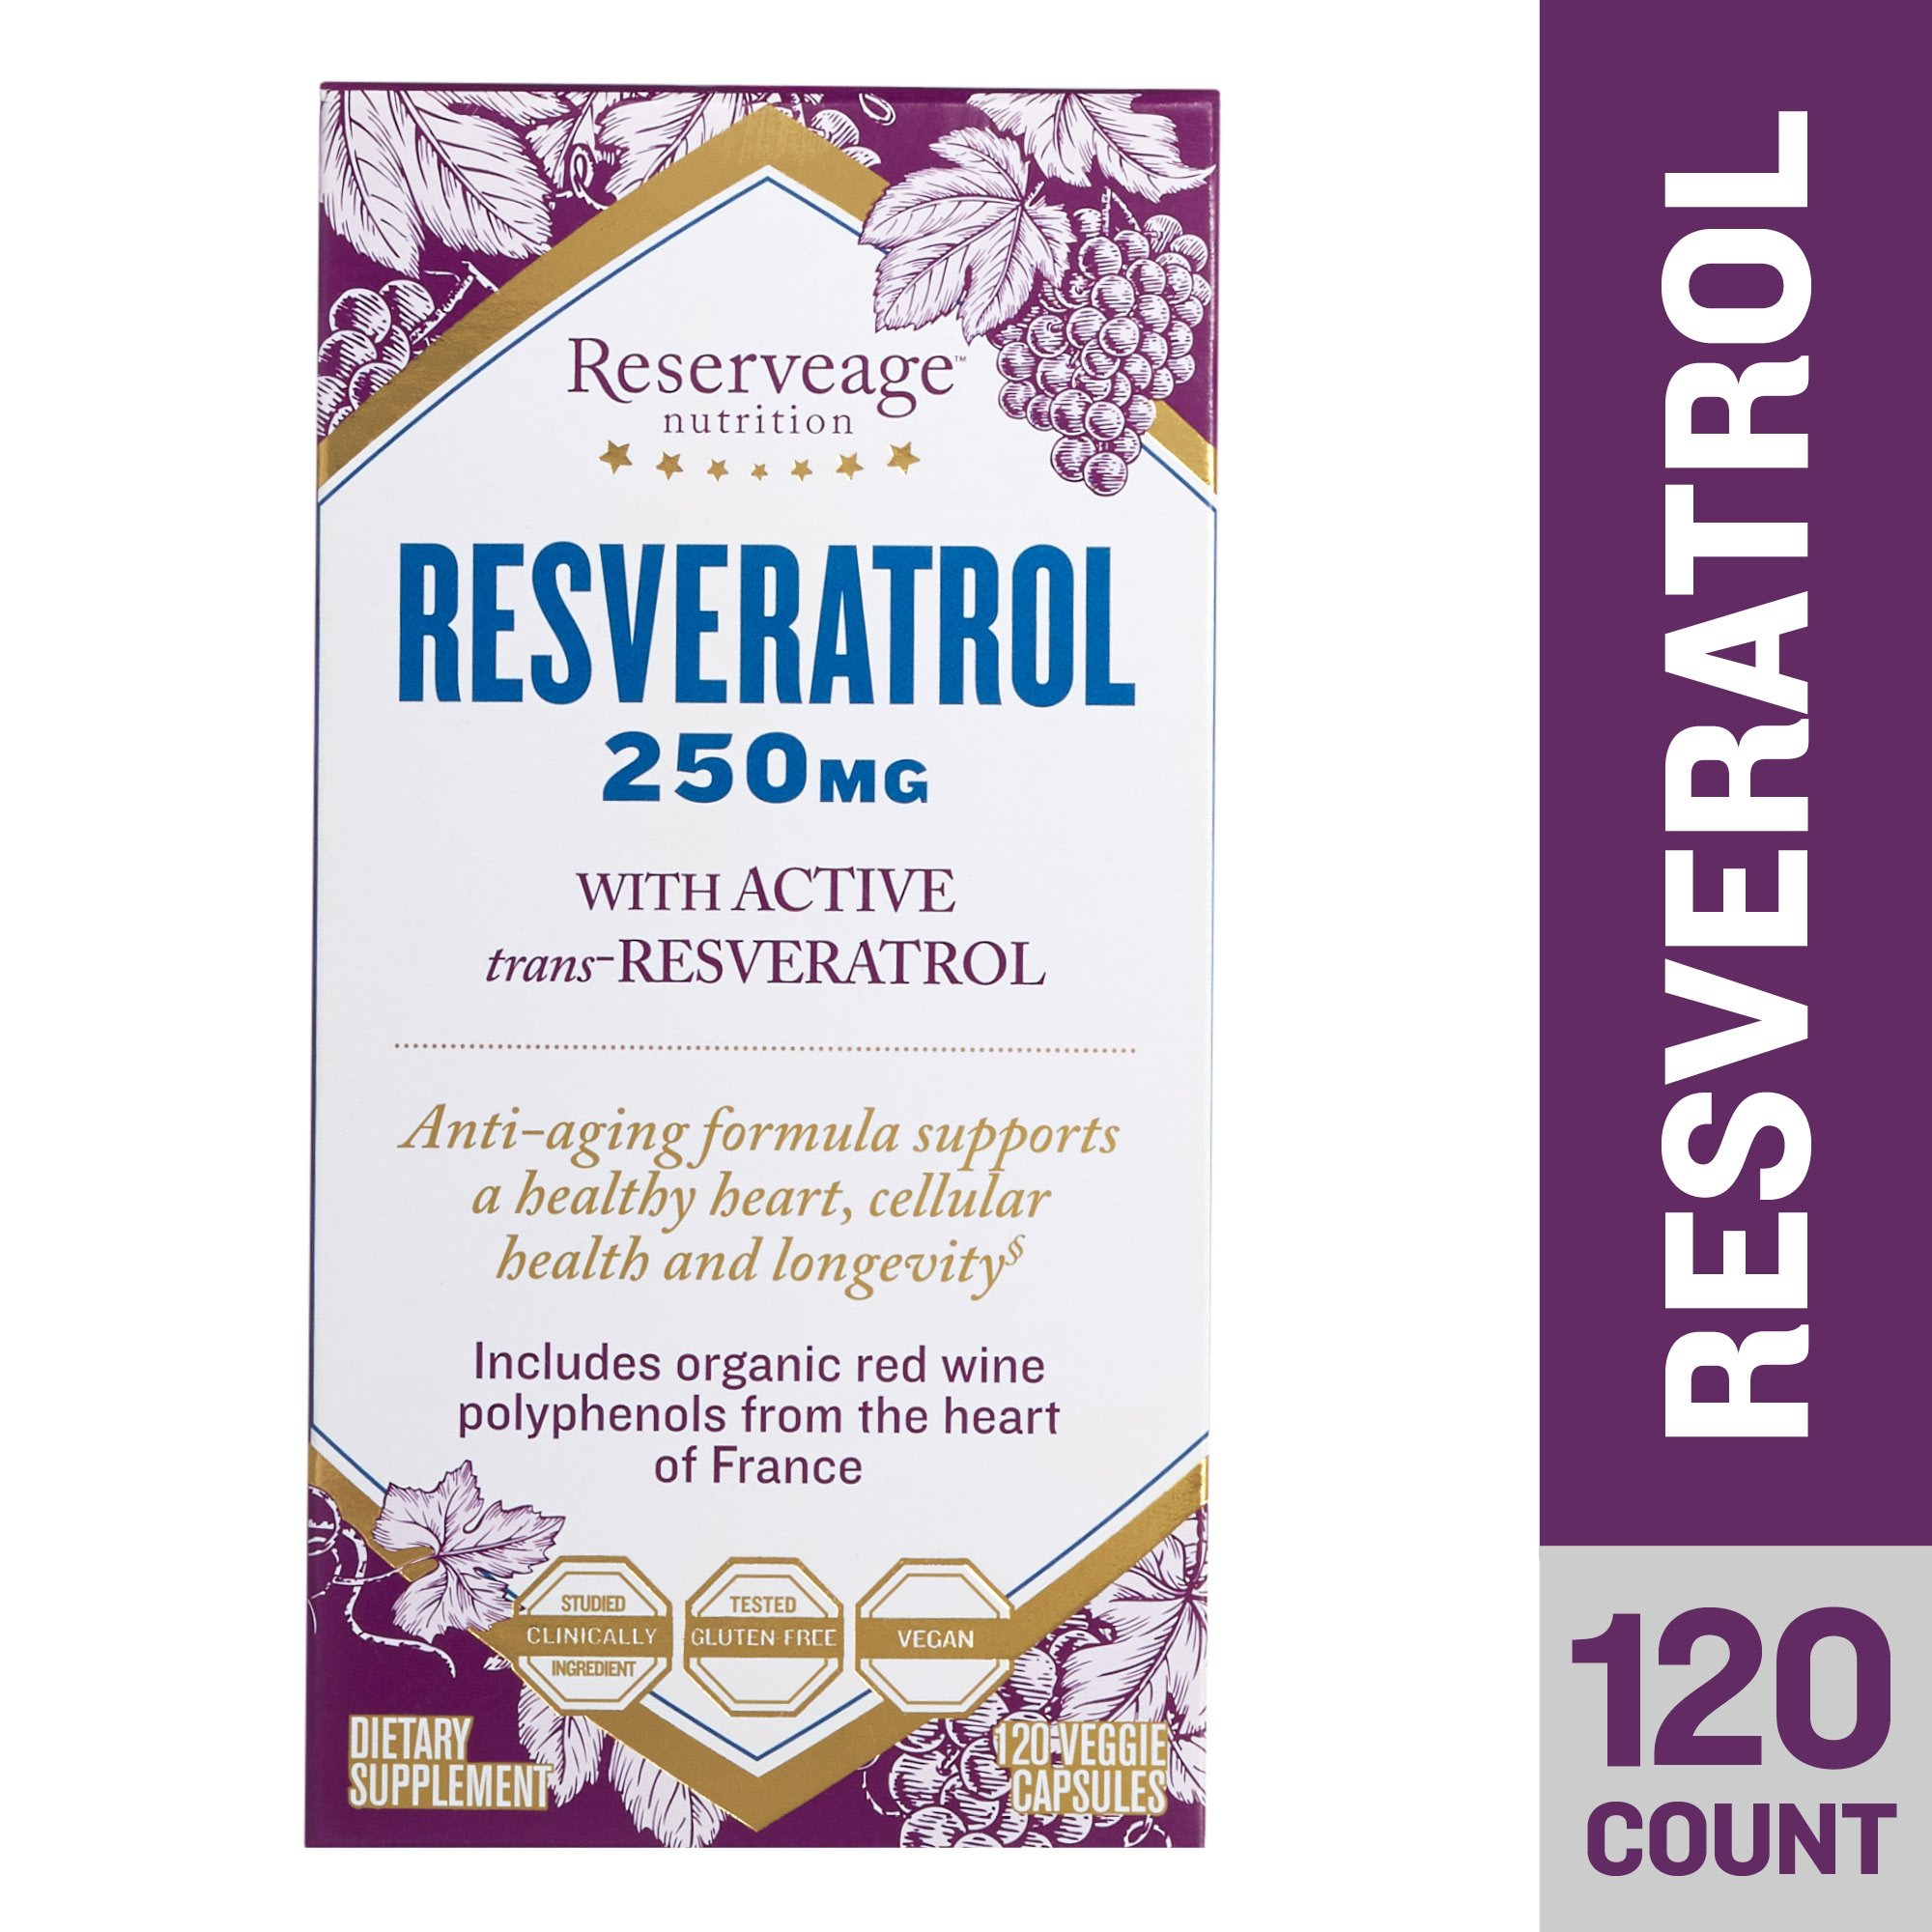 Reserveage - Resveratrol 250mg, Antioxidant Support for a Healthy Heart and Age Defying, Youthful Looking Skin with Organic Red Grapes and Quercetin, Gluten Free, Vegan, 120 Capsules